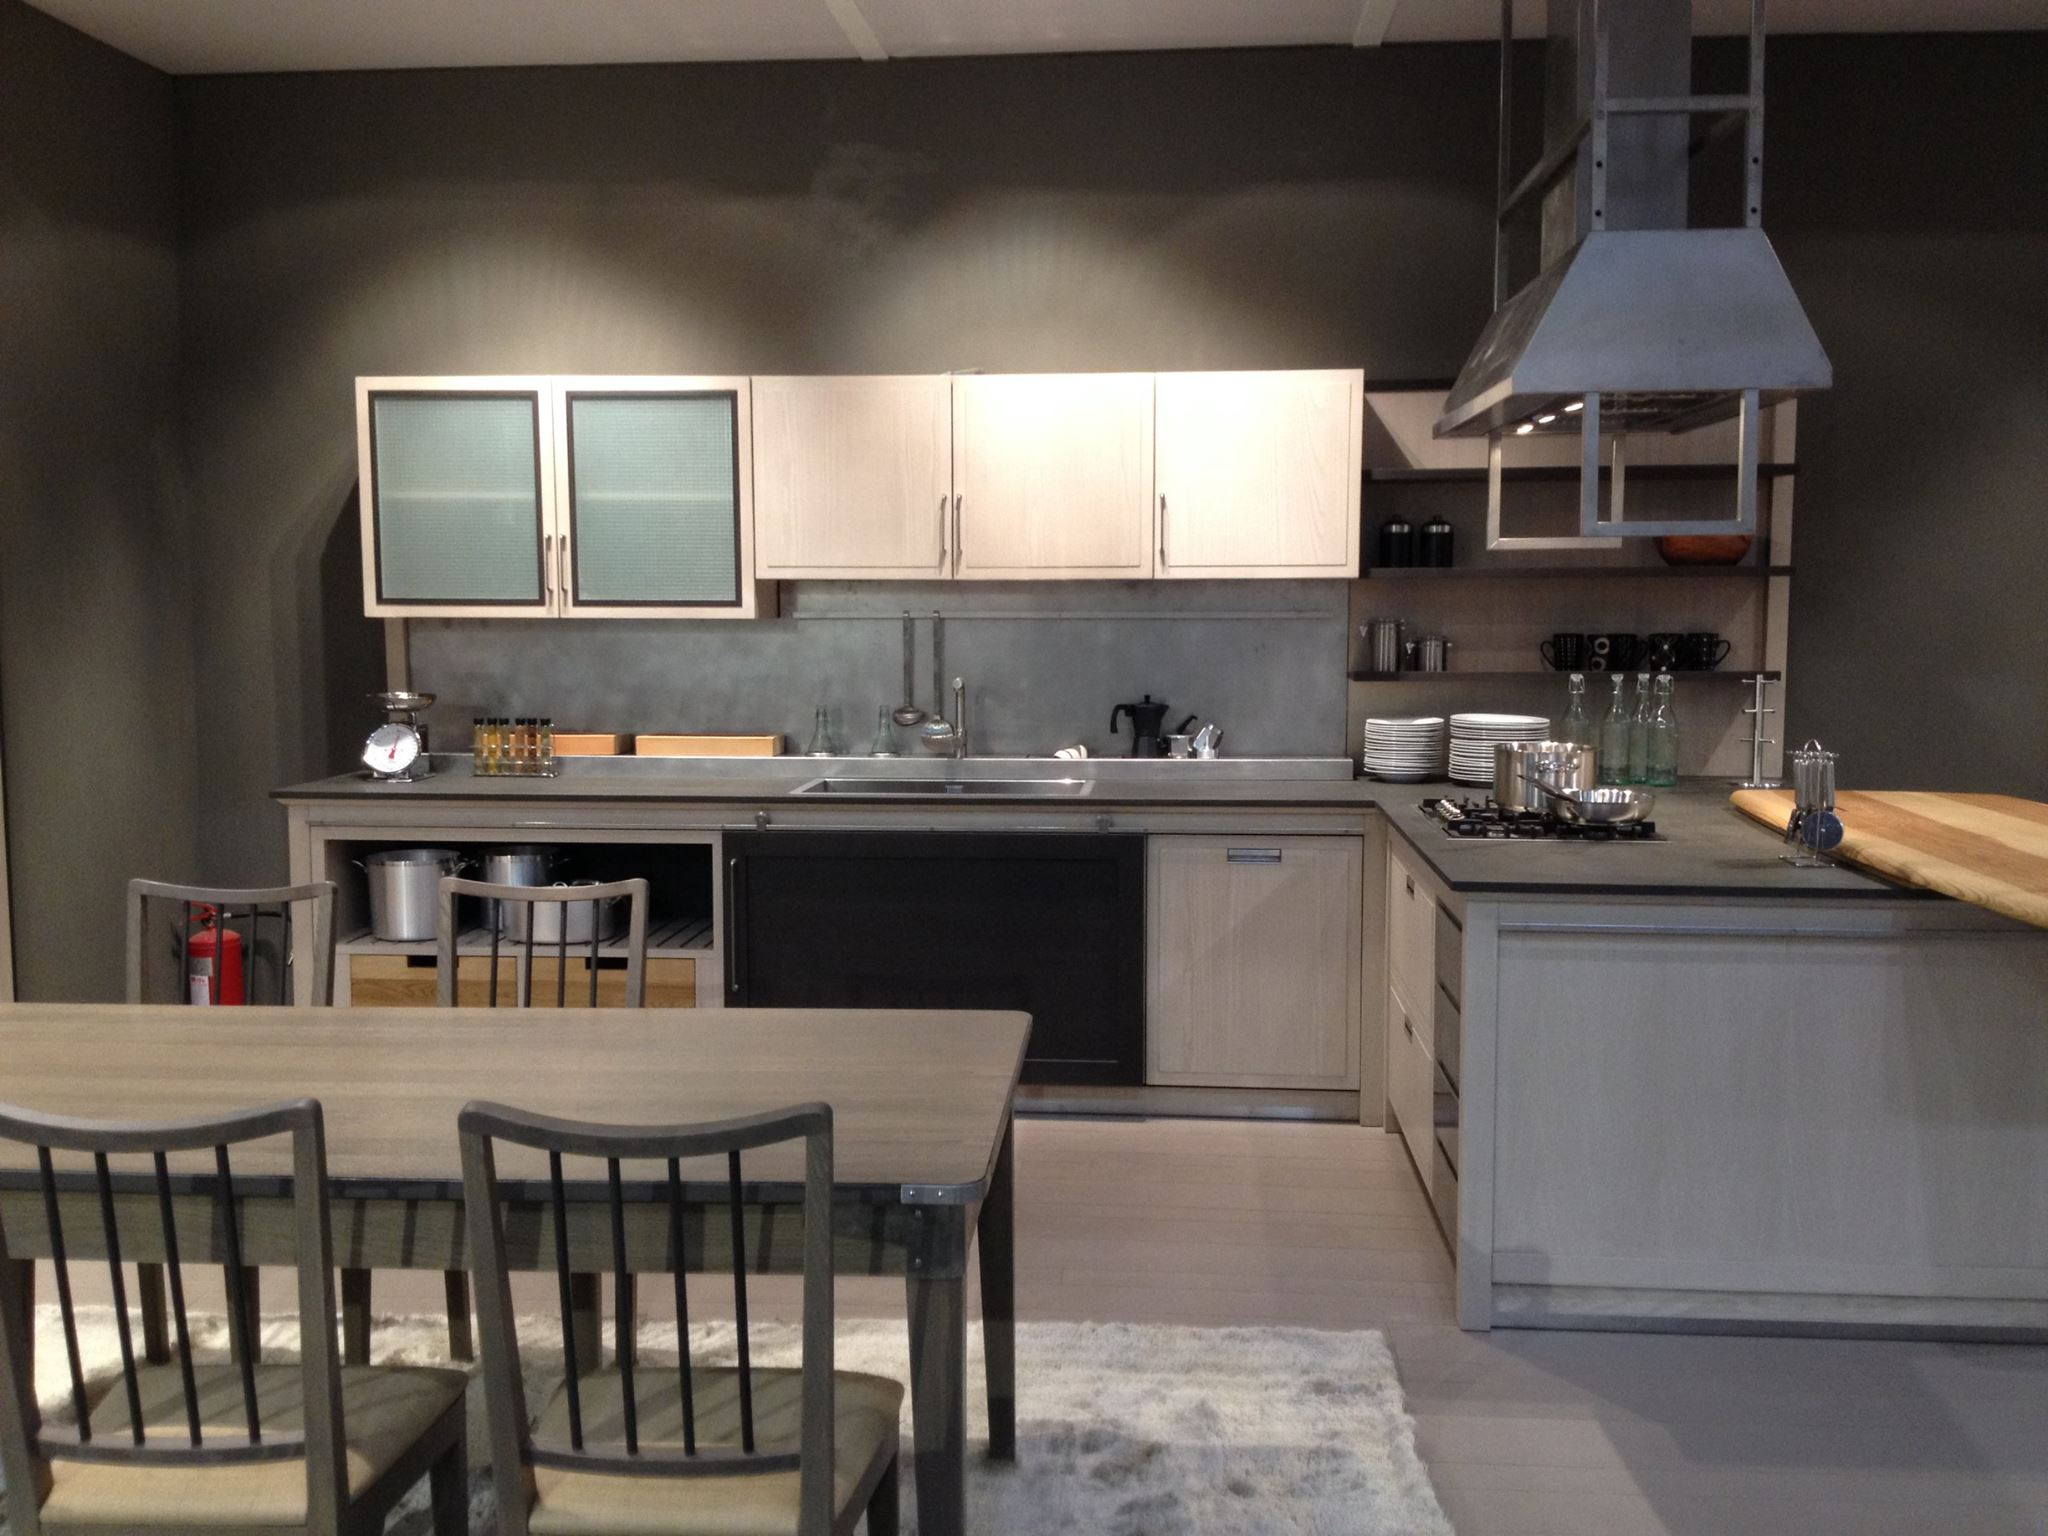 Cucine industriale richiedi with cucine industriale for Arredamento industry